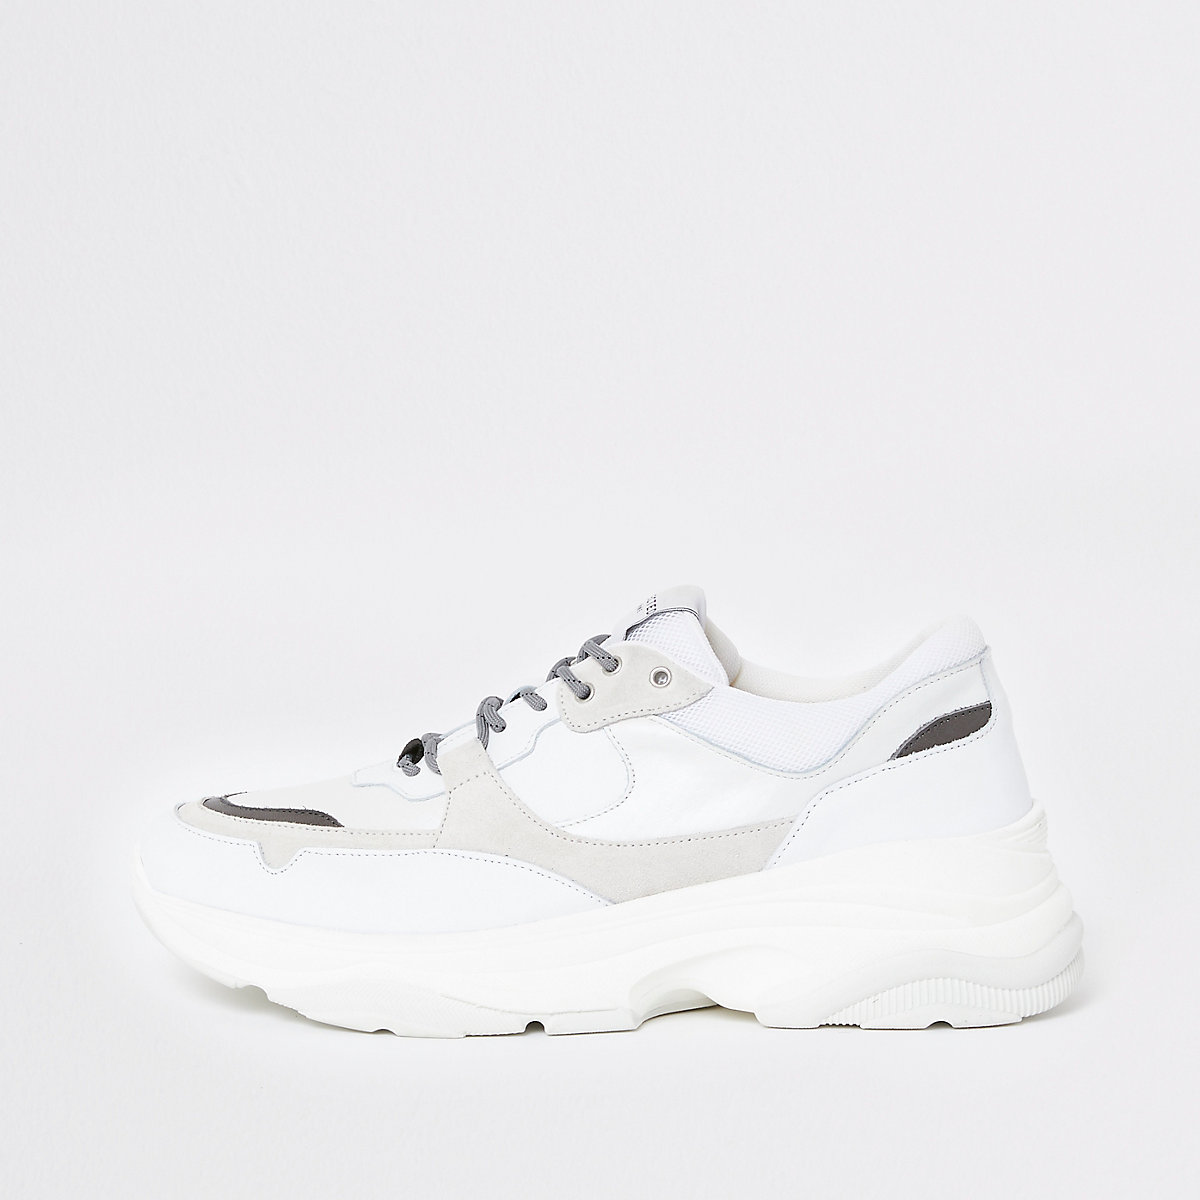 Selected Homme white chunky runner sneakers